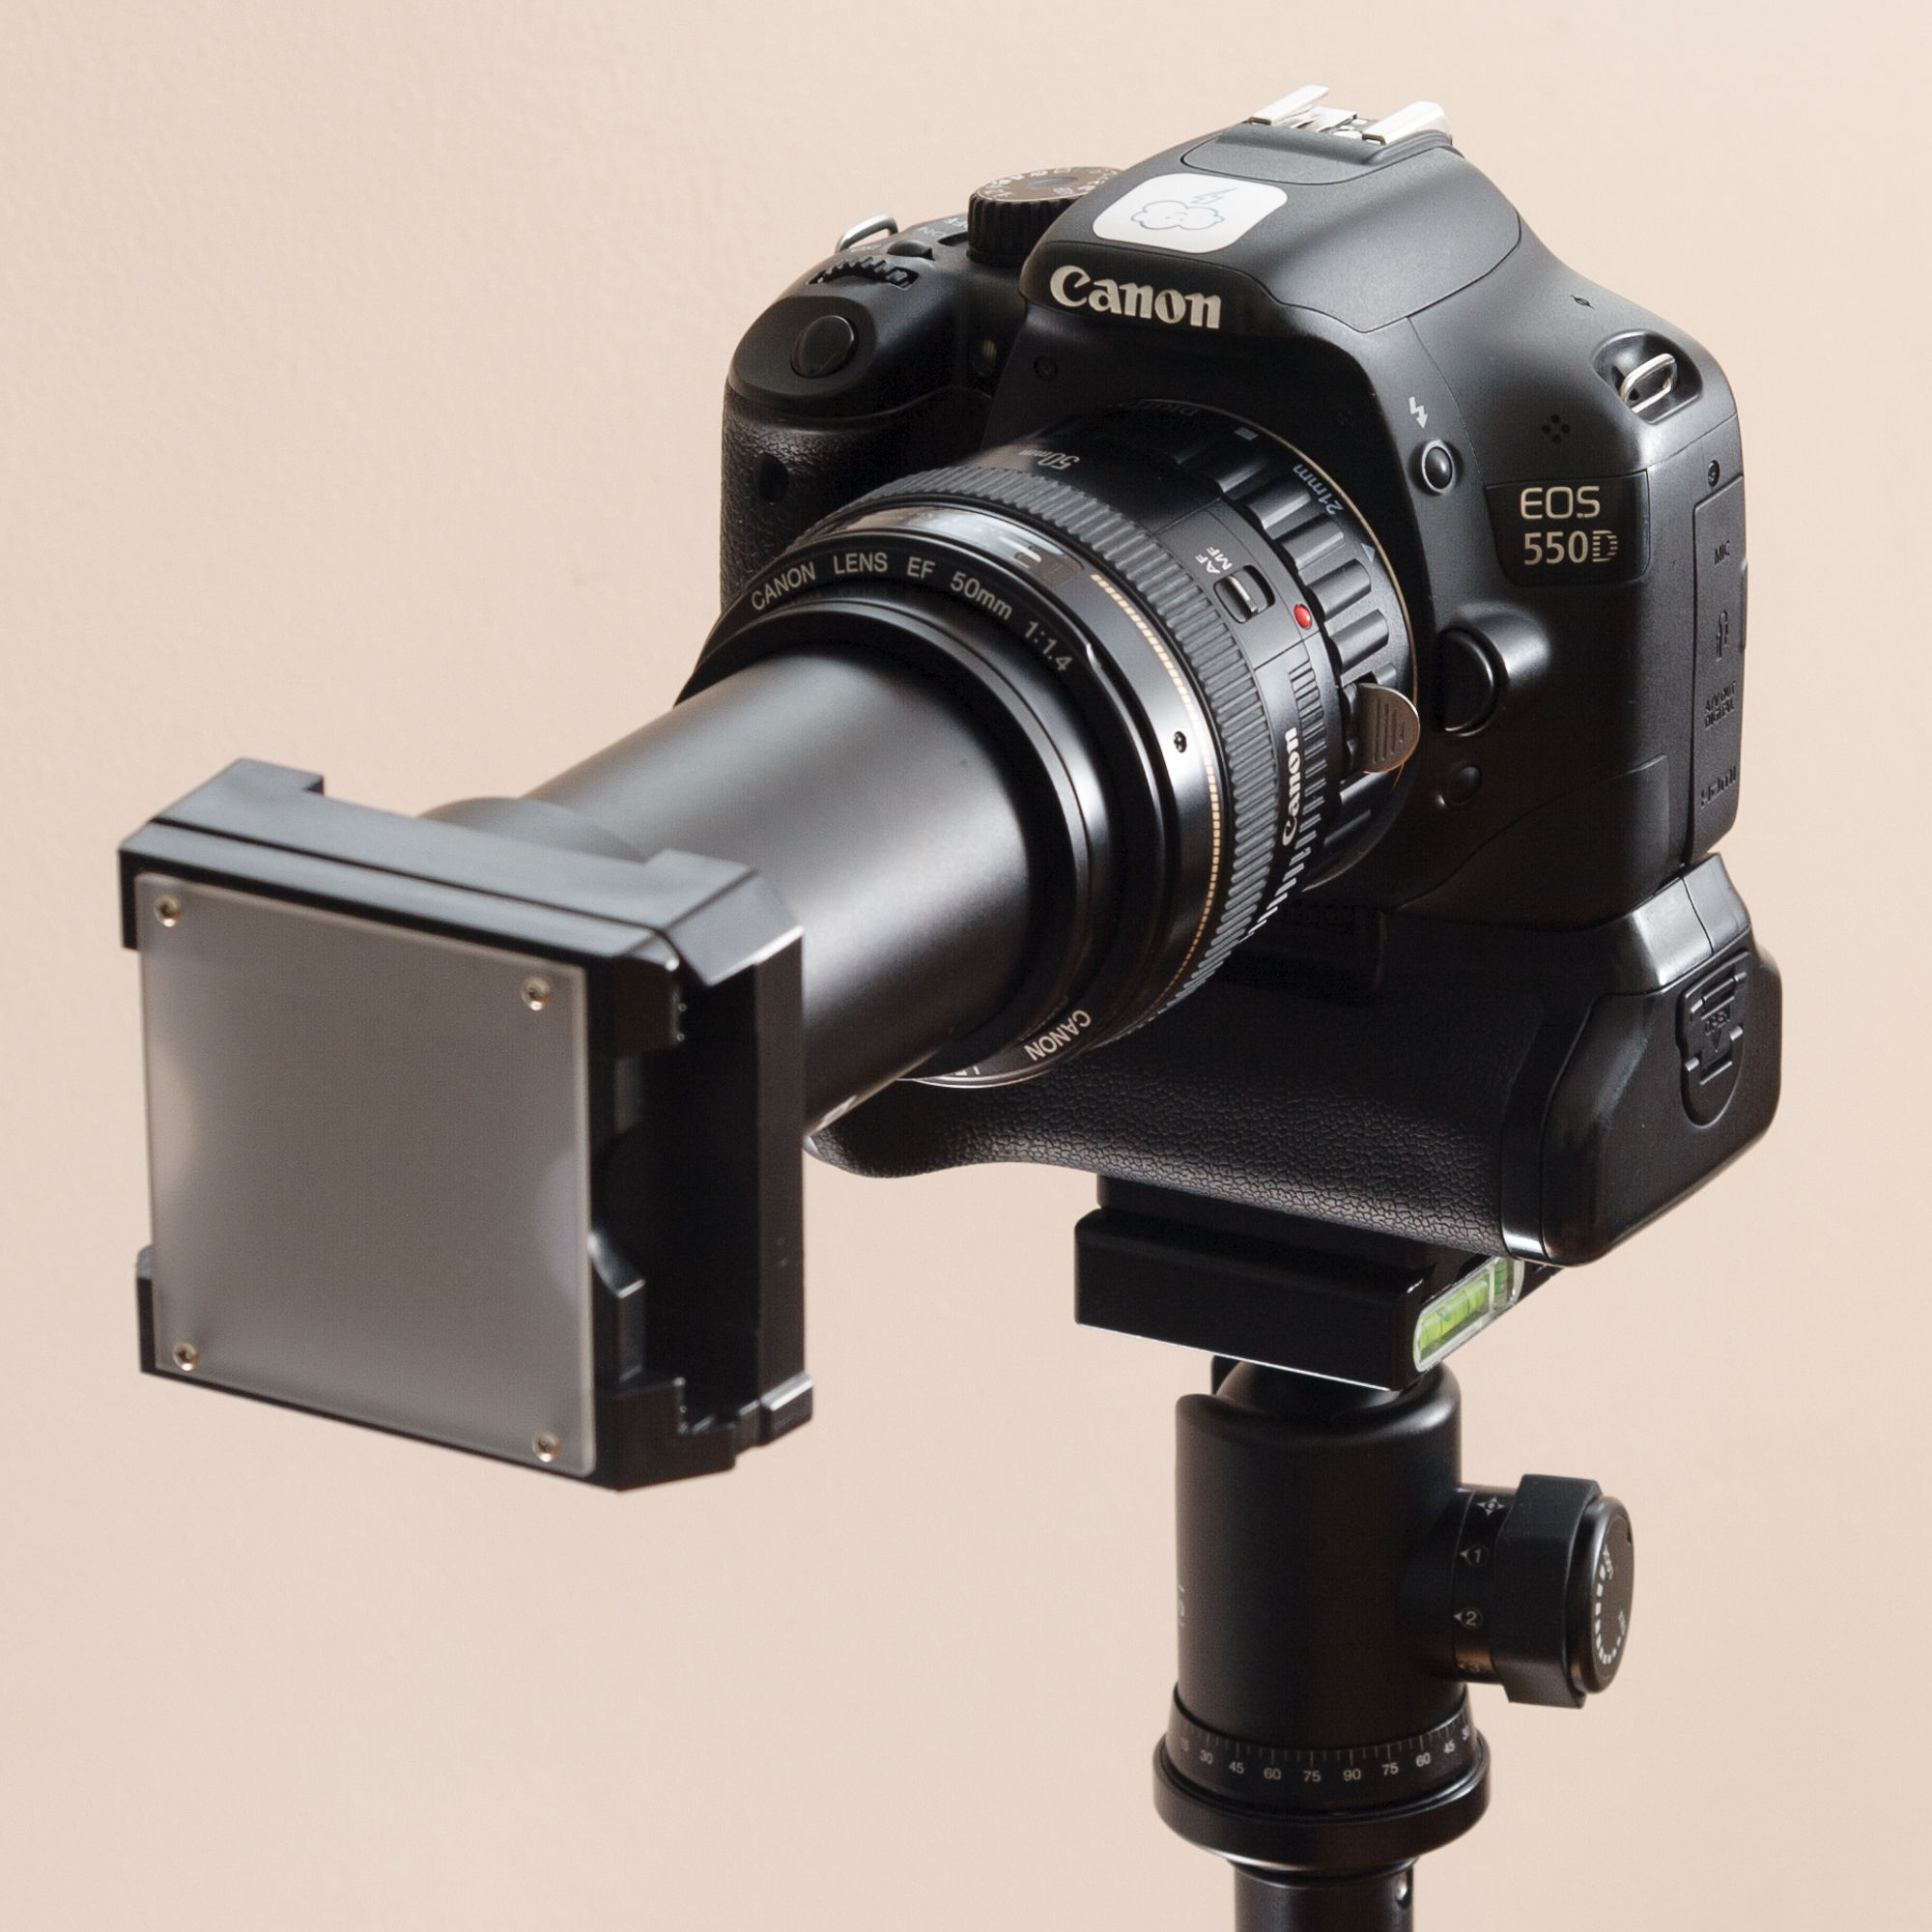 The slide duplicator, lens and macro tube attached to the camera.